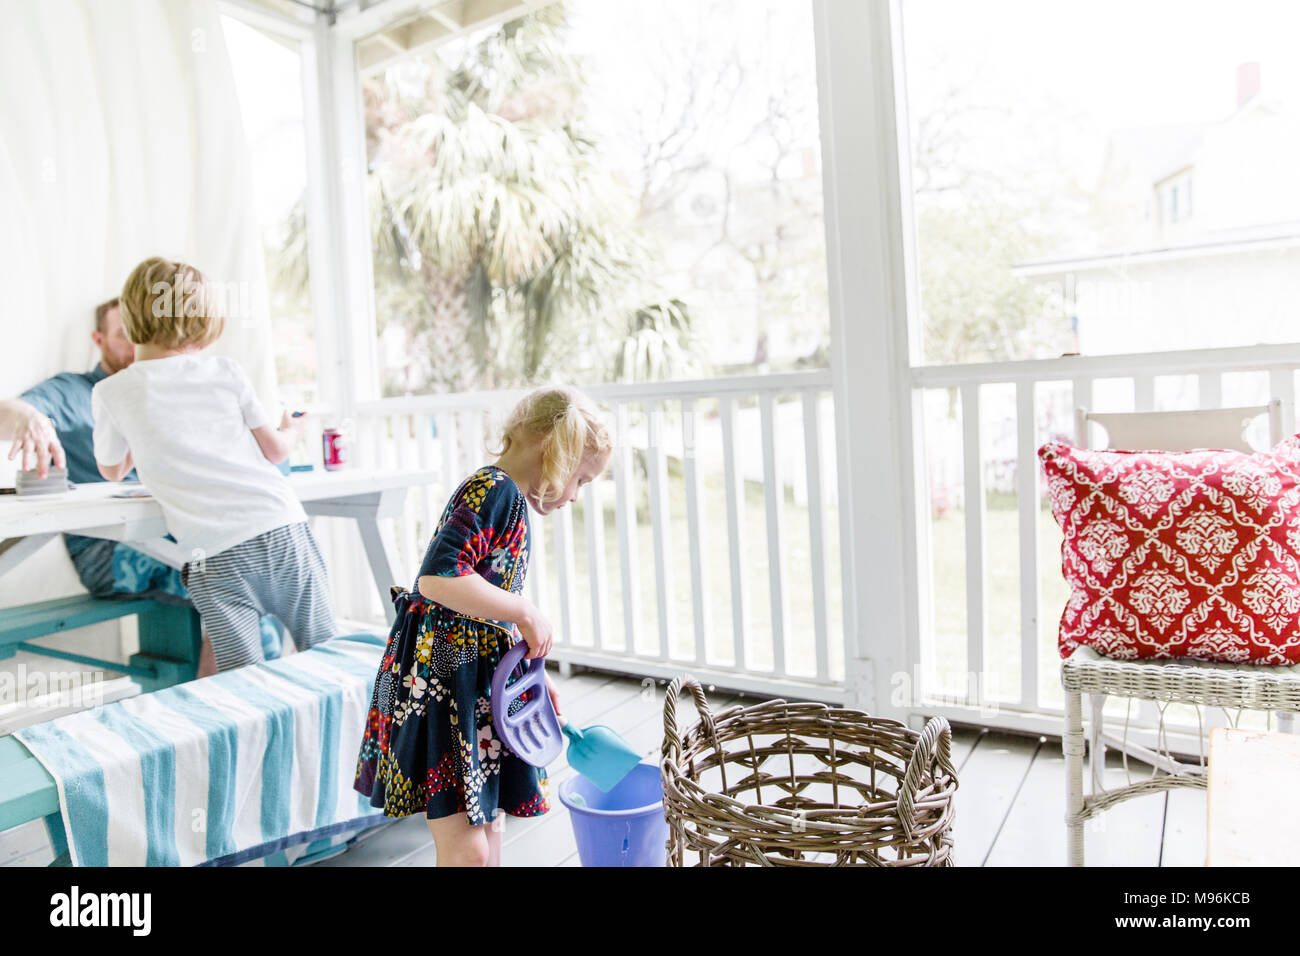 Debout/assis sur la famille Perron Photo Stock